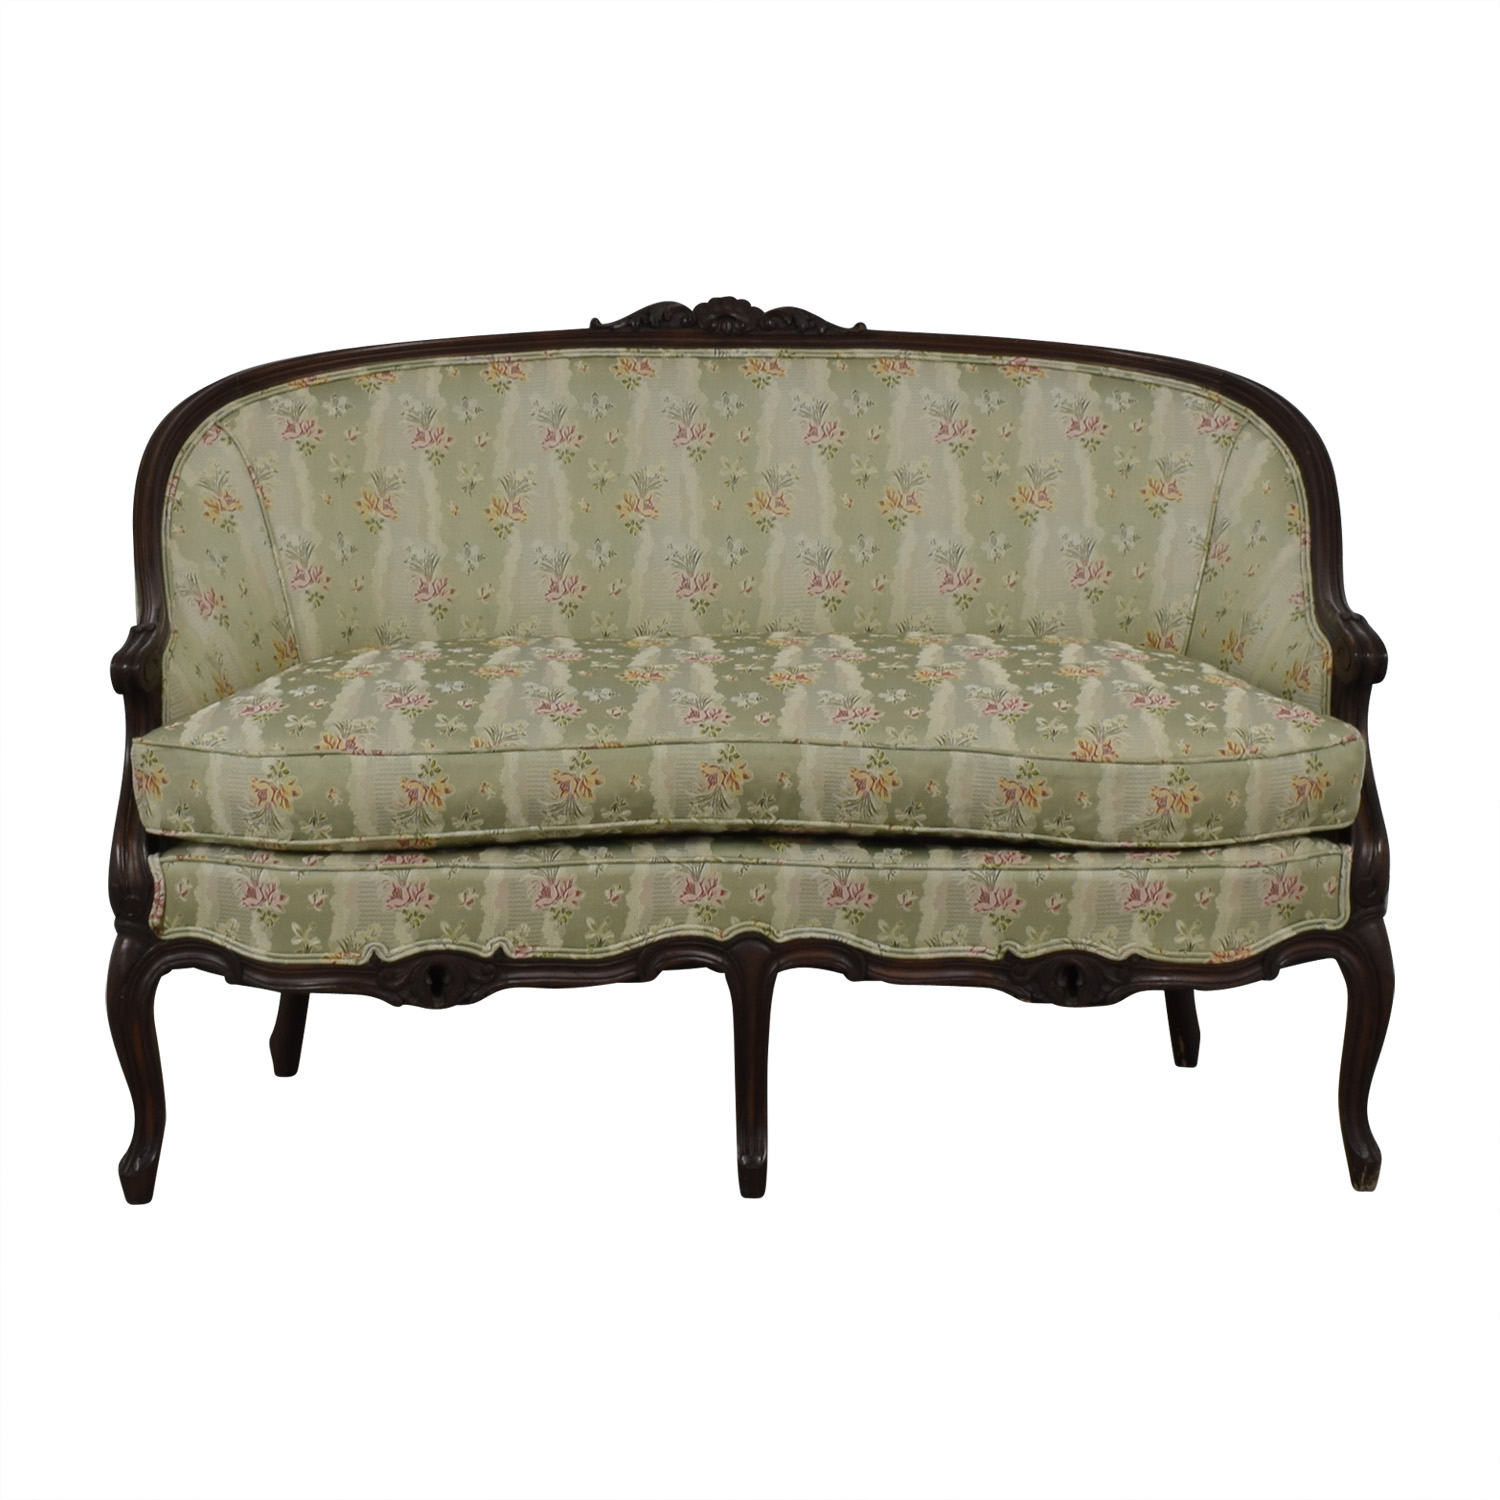 Antique French Floral Upholstered Single Cushion Loveseat Price